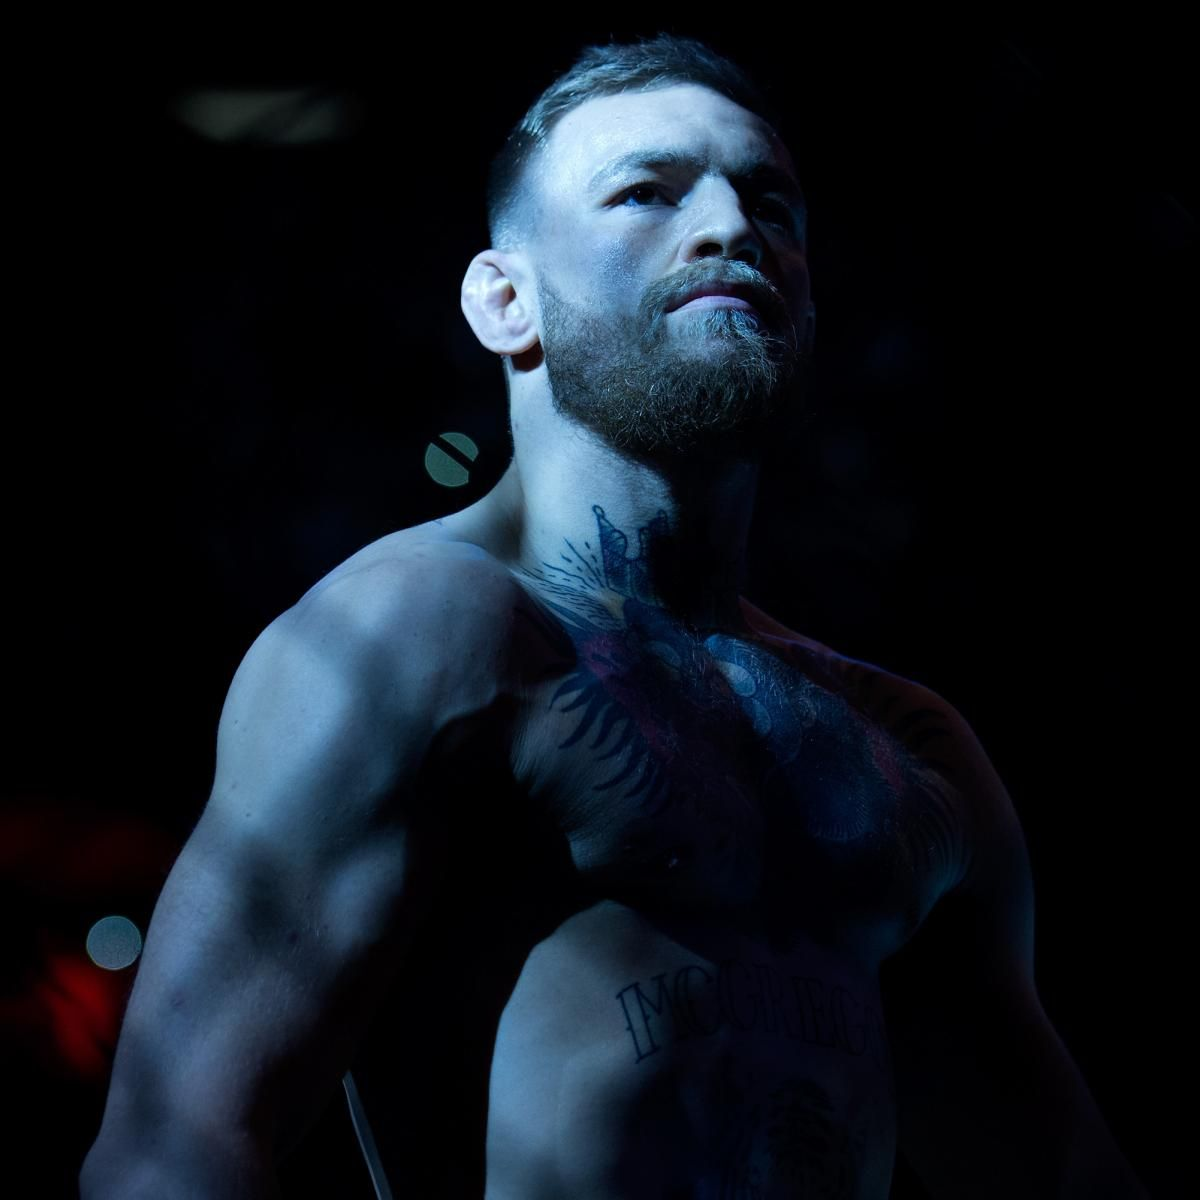 Win or Lose, Is This the Last We See of Conor McGregor the Fighter? - Bleacher Report